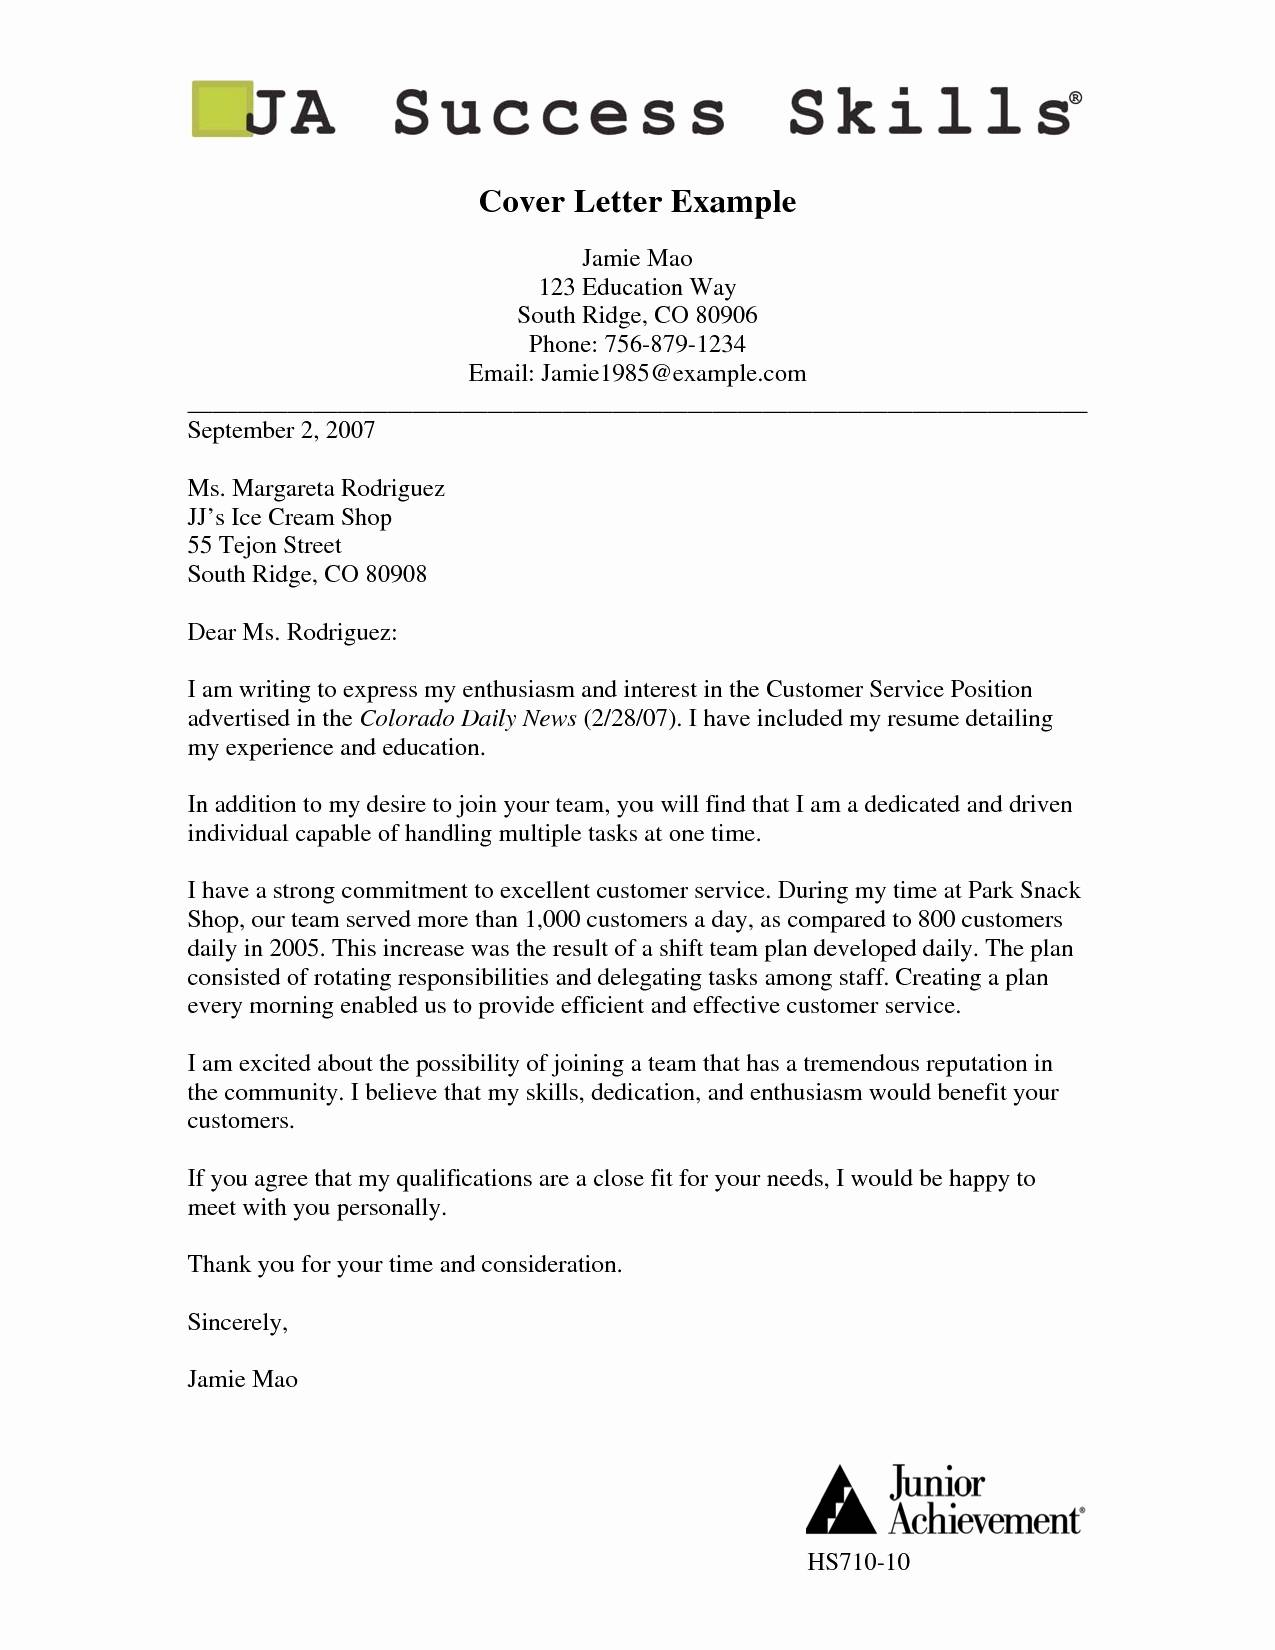 Cover Letter Template for Receptionist - Cover Letter Sampe Awesome Cover Letter Sample for Receptionist Job